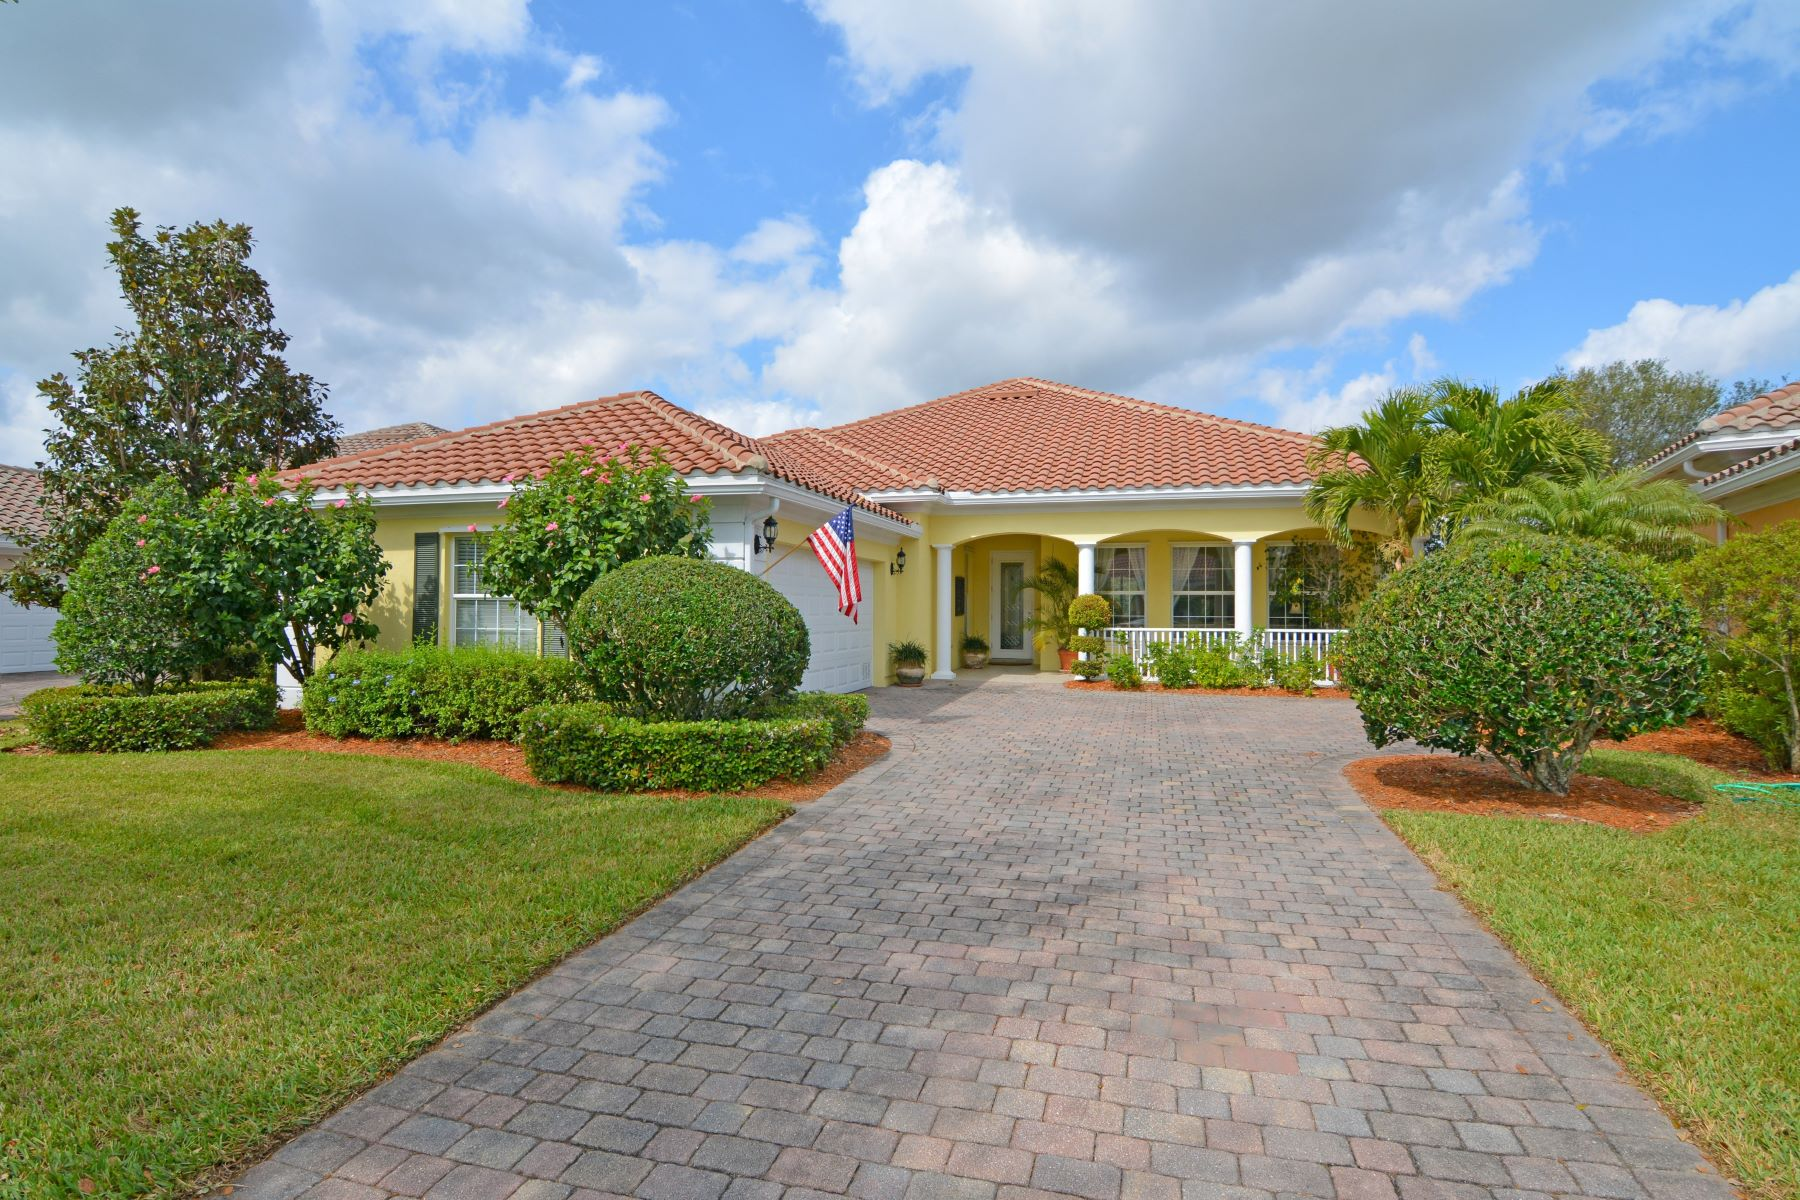 Gorgeous Four Bedroom Home 5445 Barbados Square Vero Beach, Floride 32967 États-Unis